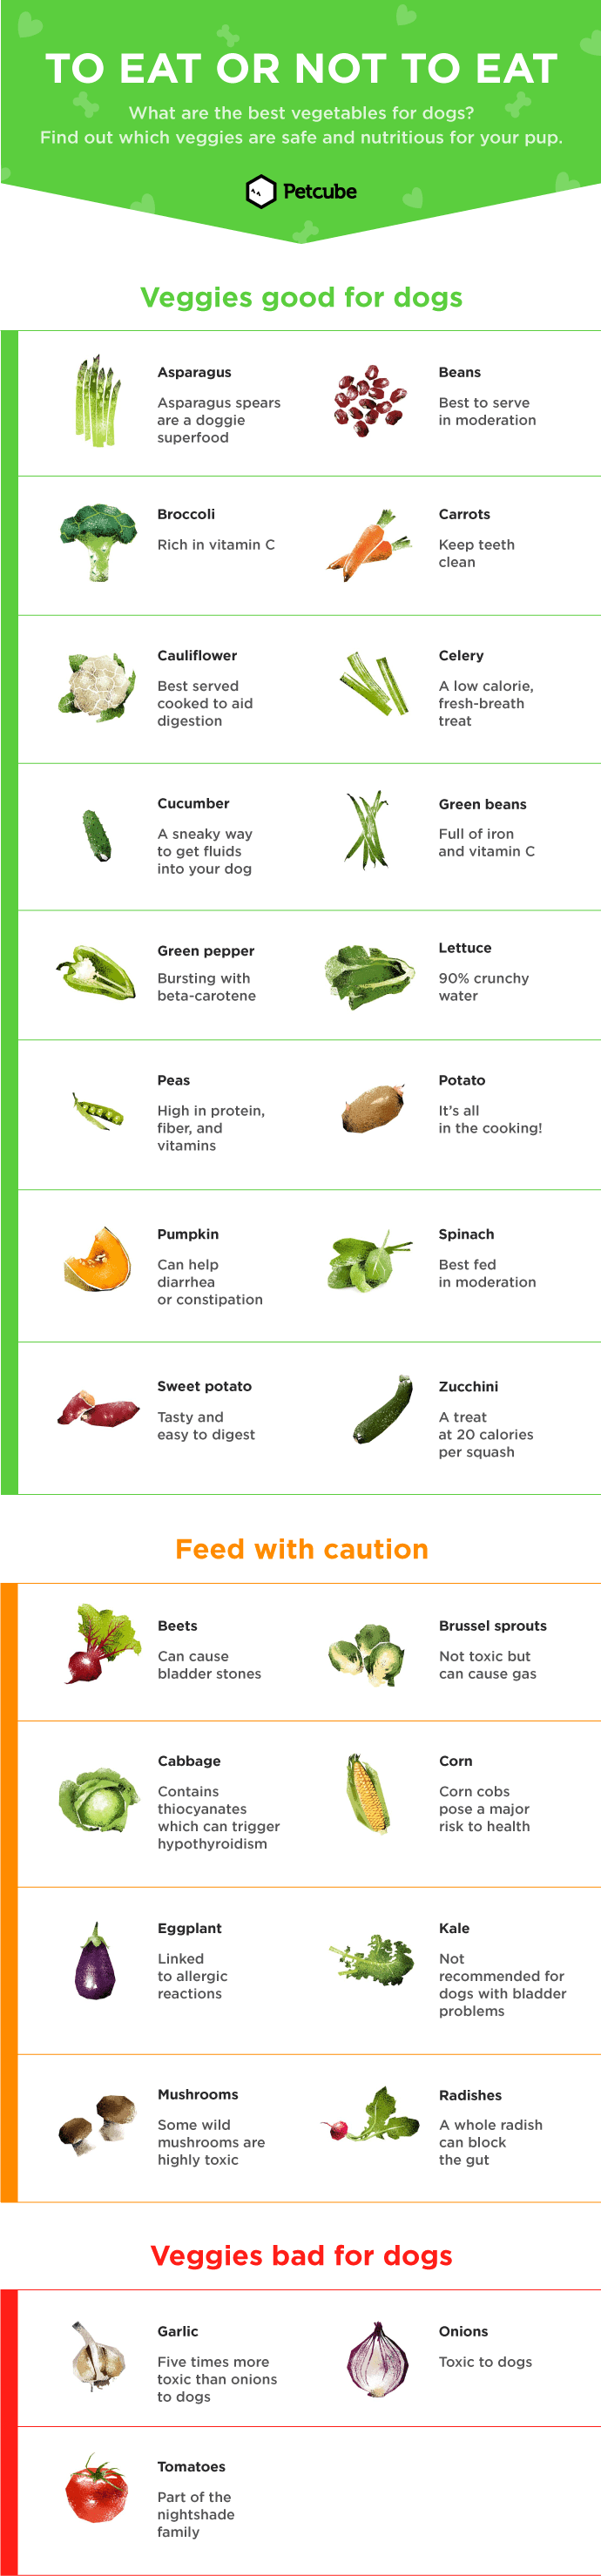 Vegetables dogs can and can't eat infographic